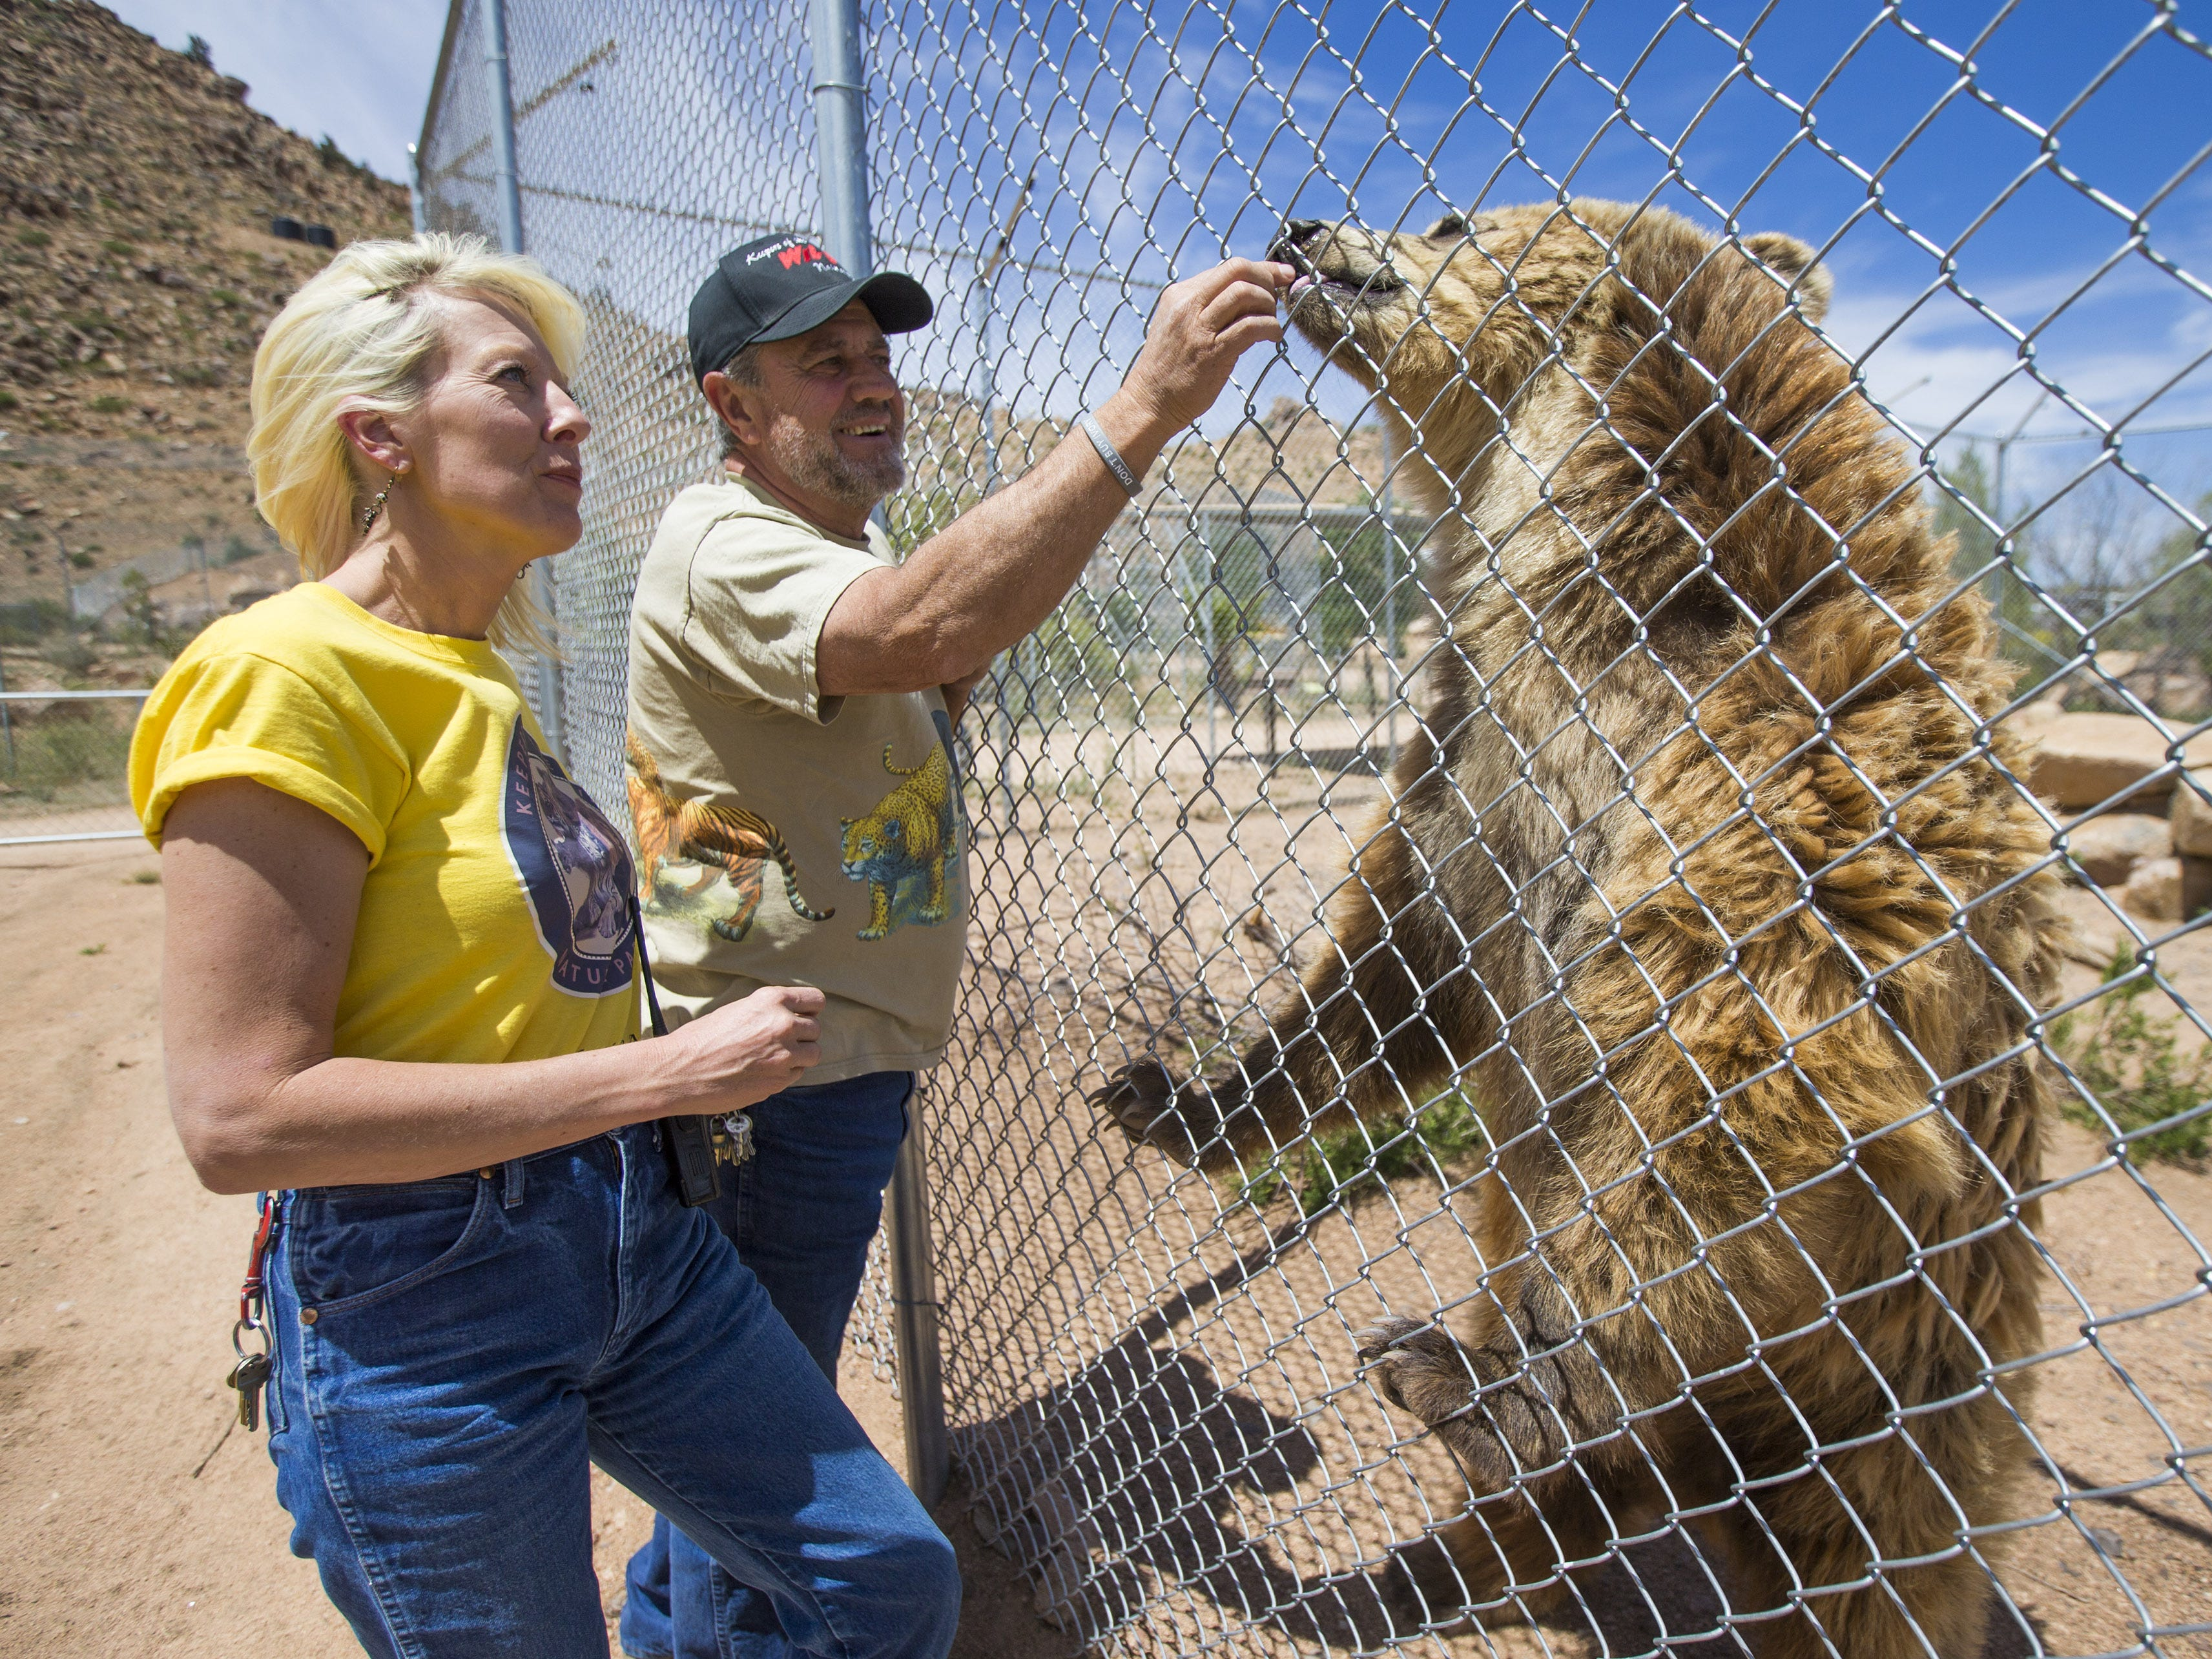 Keepers of the Wild founder Jonathan Kraft (left), with co-director Tina Matejek, is one of the promoters for a larger Wild Planet Animal Sanctuary, which aims to provide a refuge for wild creatures used in animal acts and those given up or confiscated from private owners.  Keepers of the Wild founder Jonathan Kraft and co-director Tina Matejek give a treat to Bam Bam, a grizzly bear, in Valentine, Ariz., on May 27, 2015. The nonprofit sanctuary for retired Las Vegas show tigers and other exotic animals is looking to expand north of Kingman.